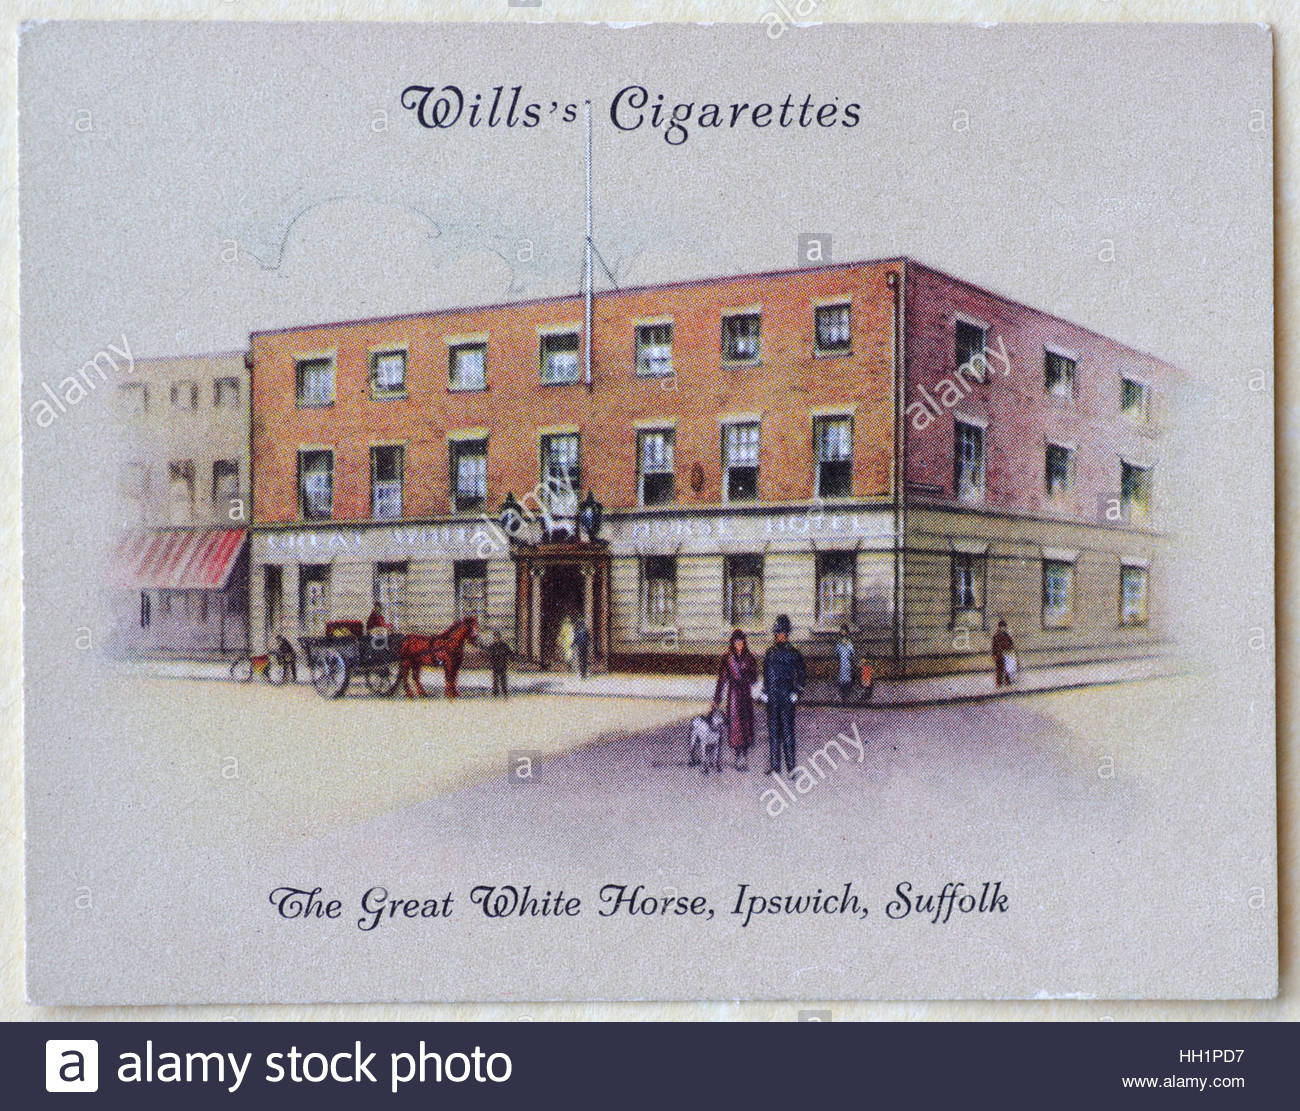 The Great White Horse, Ipswich, Suffolk circa early 1930s. - Stock Image